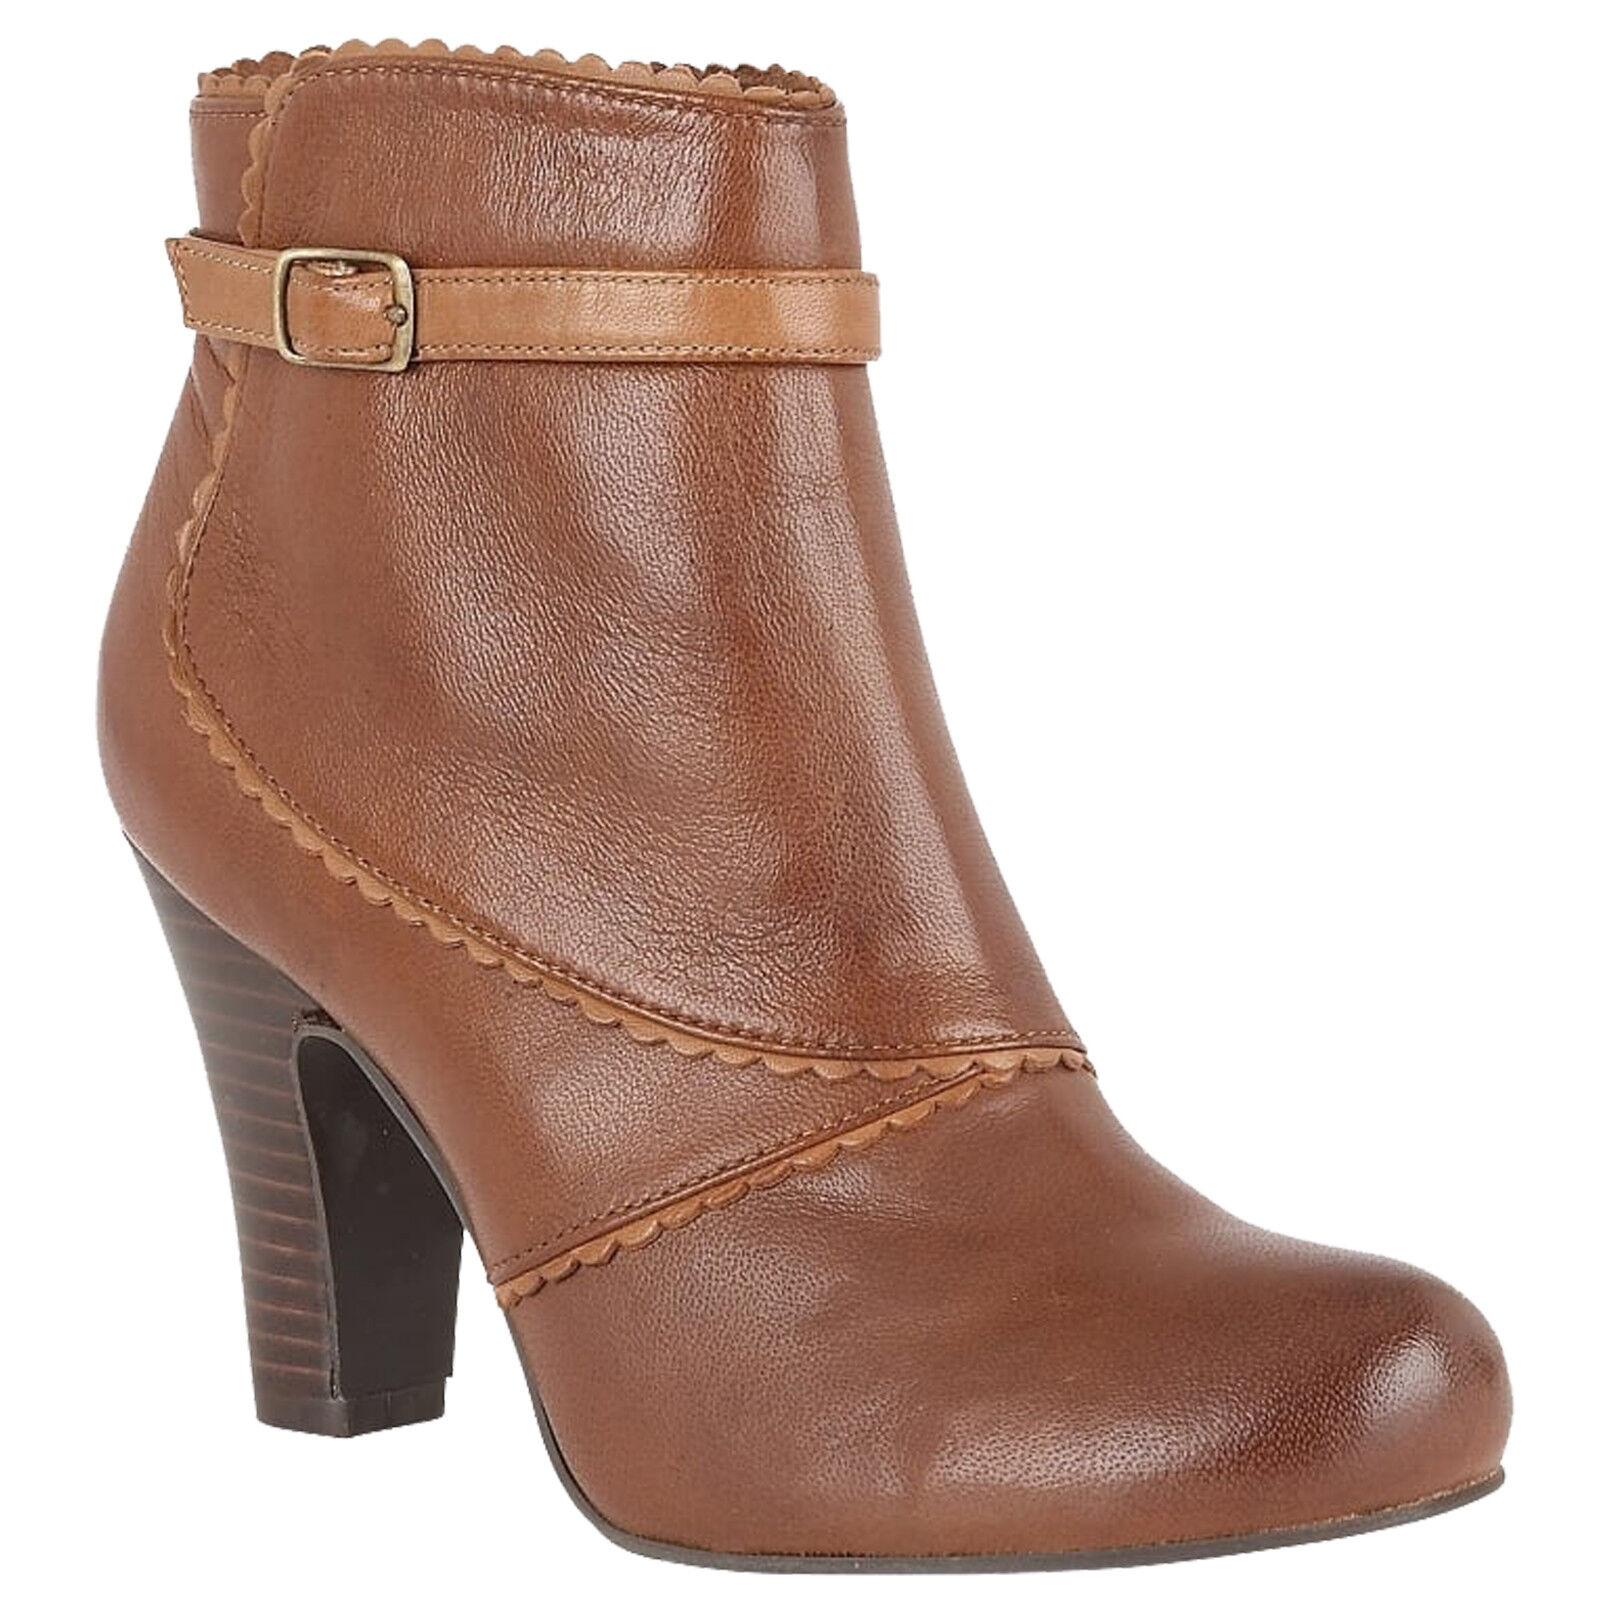 Femmes Lotus Hallmark Morie en cuir marron Bottines à Talon